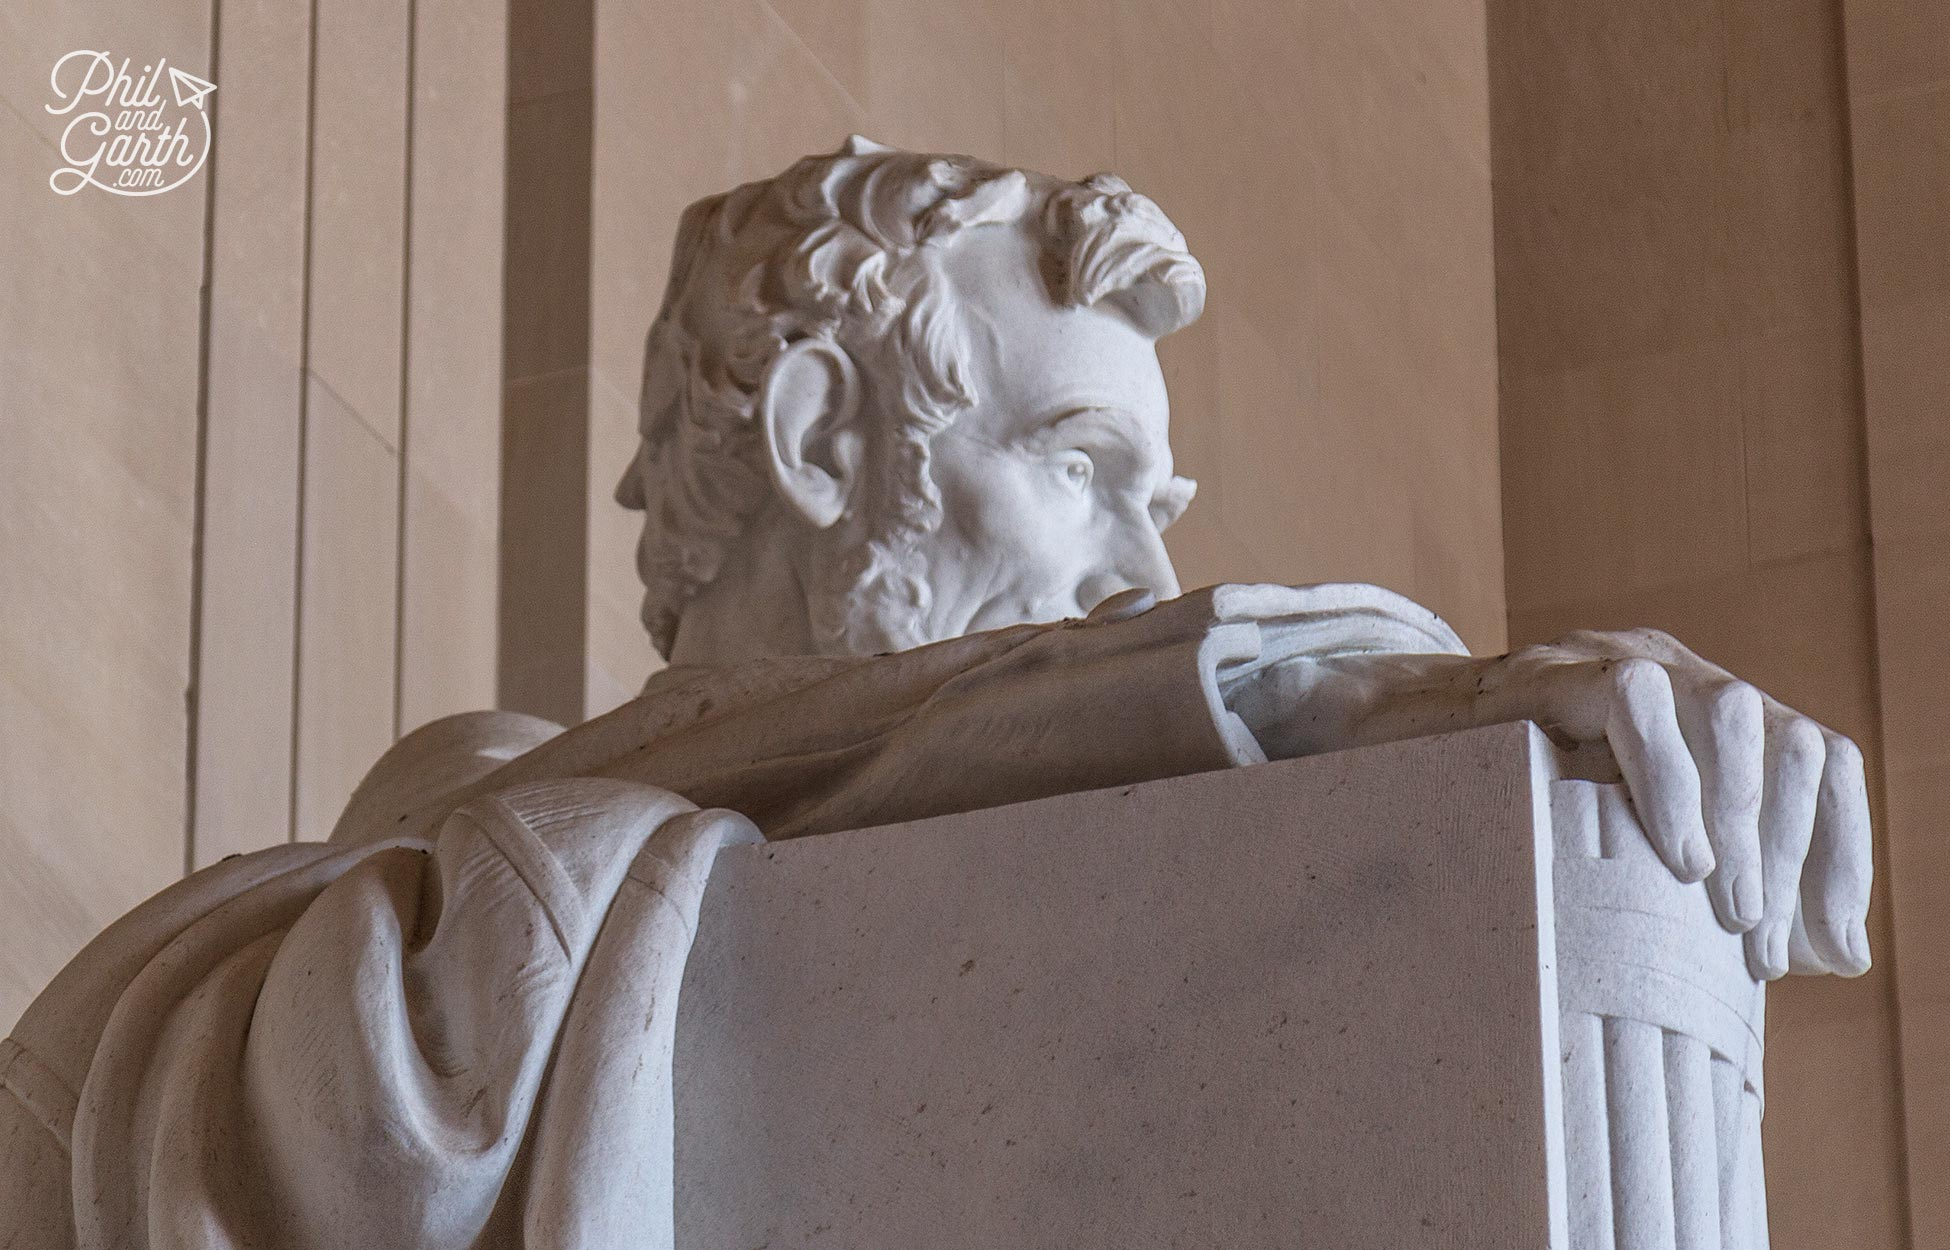 Can you spot the hidden face of army General Robert E Lee on the Lincoln Memorial?